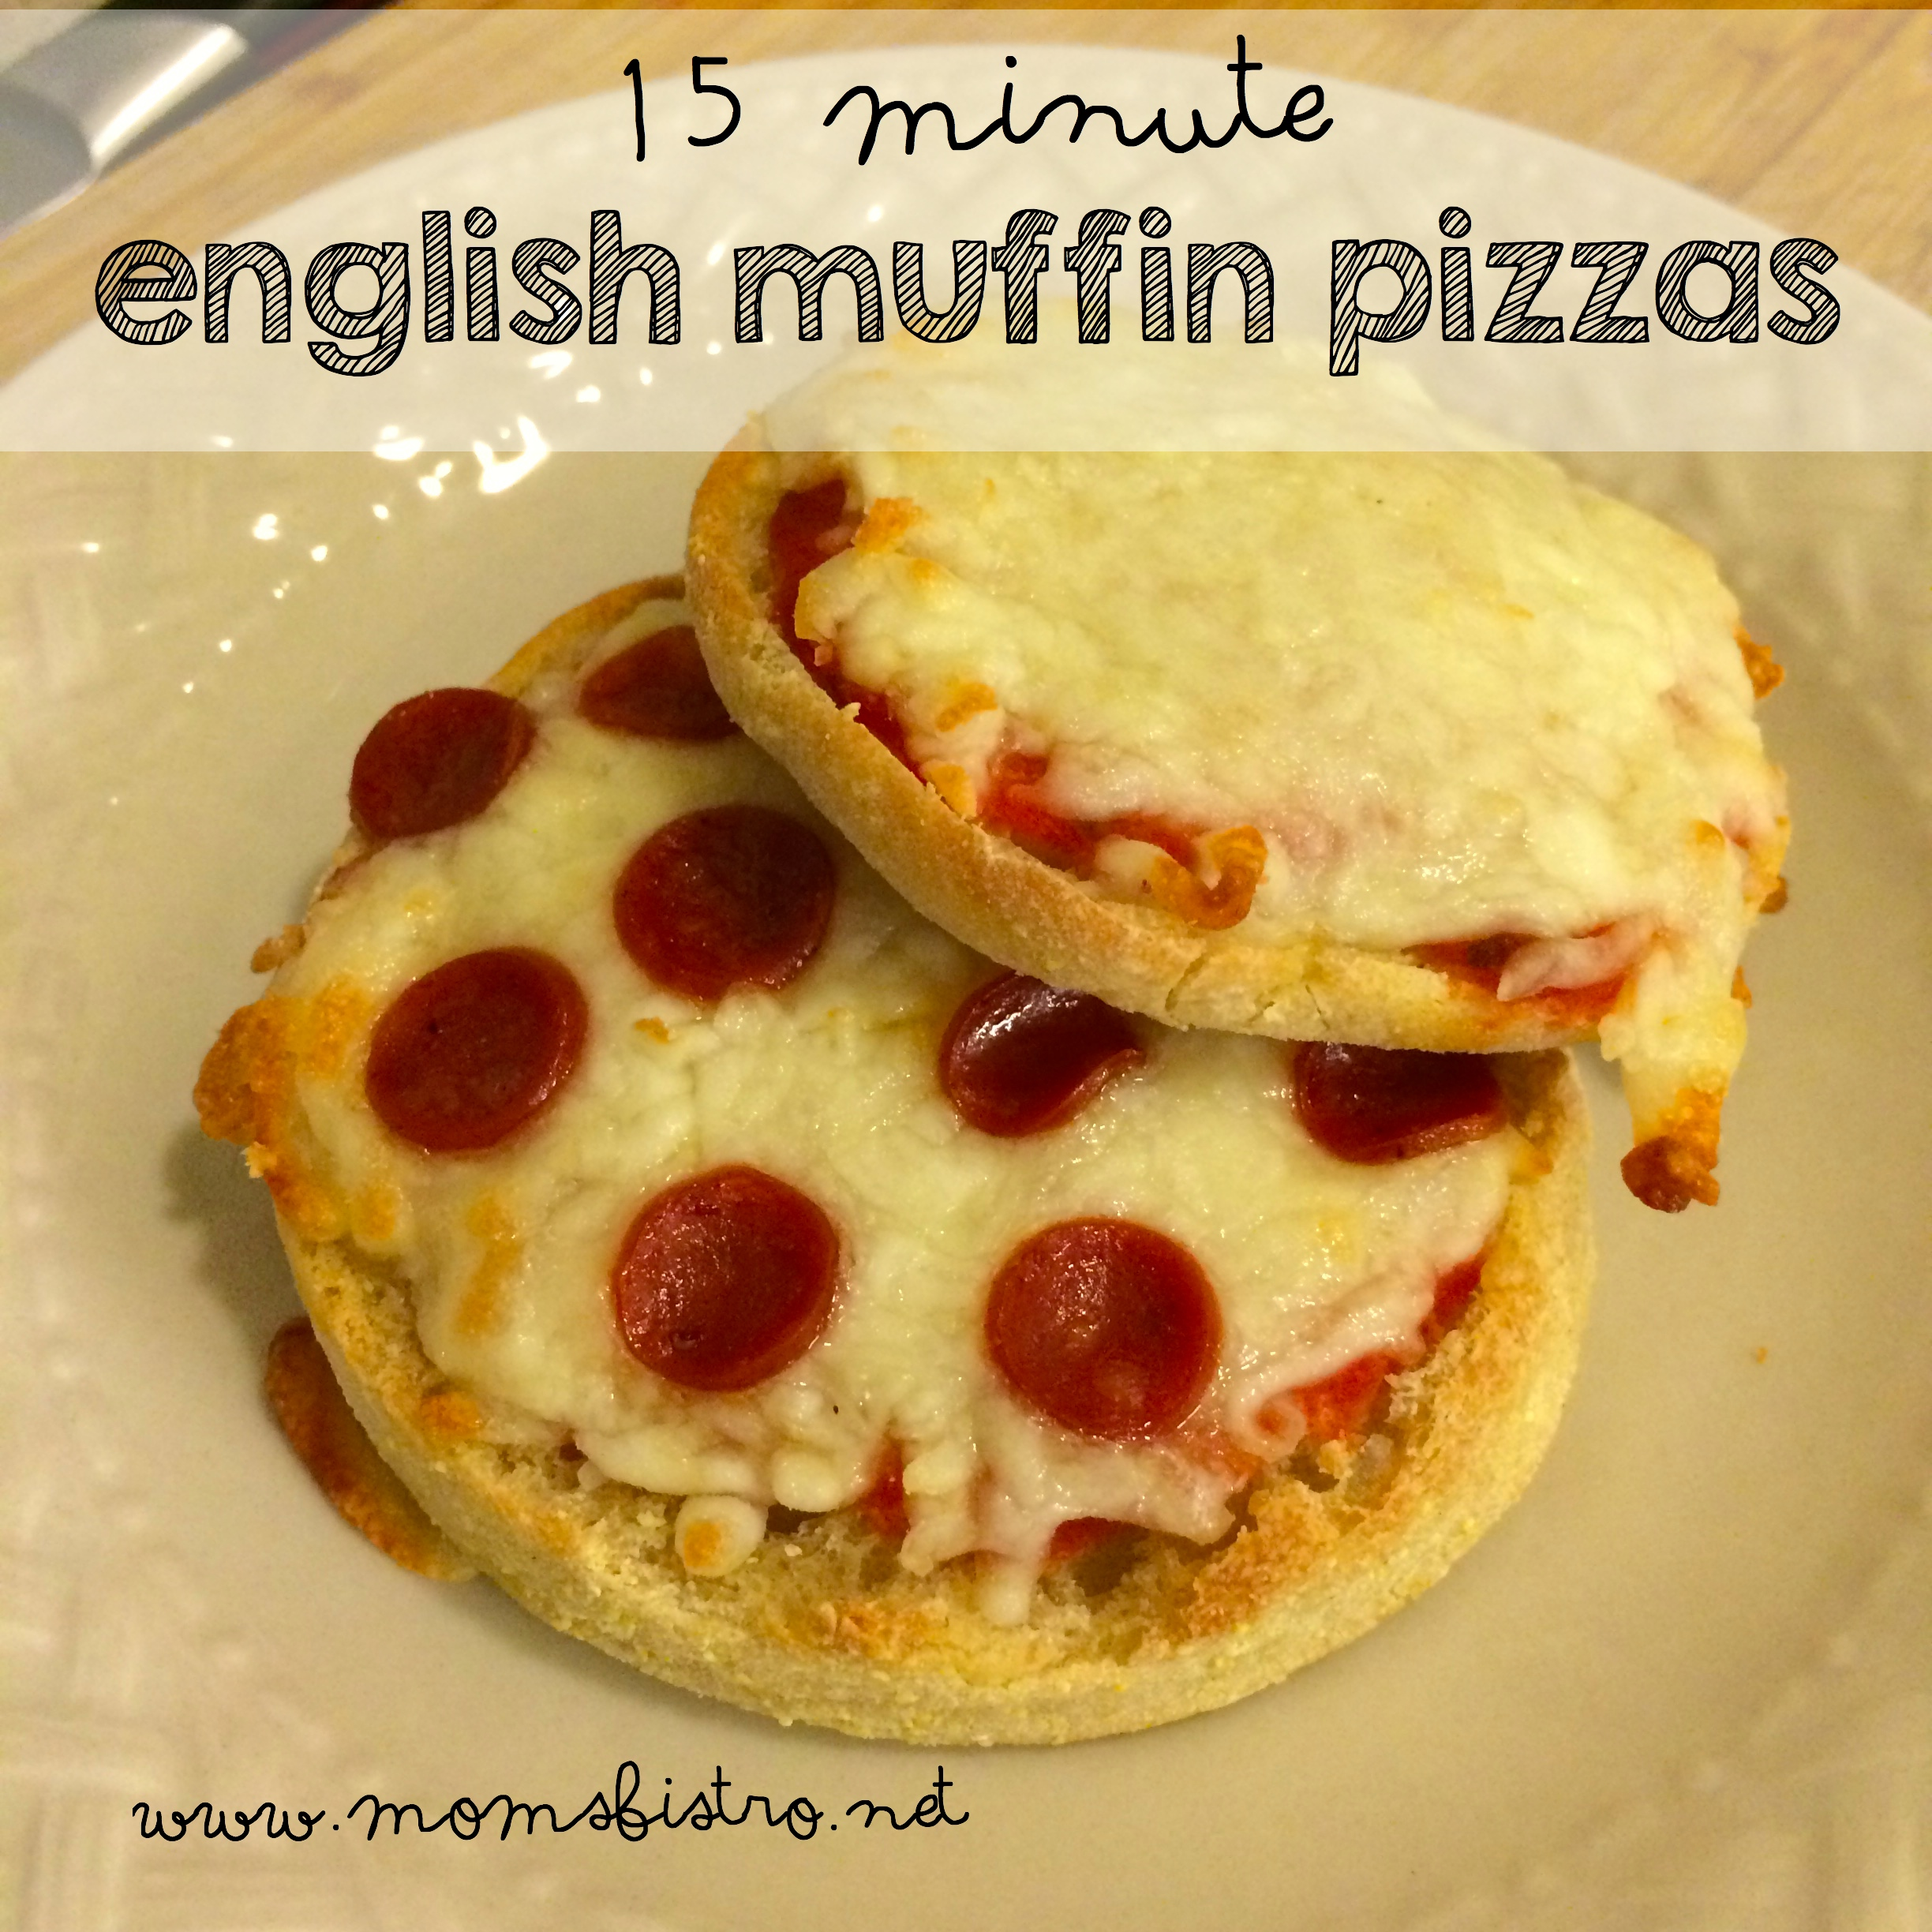 Cooking With Kids – Quick & Easy 15 Minute English Muffin Pizza Recipe